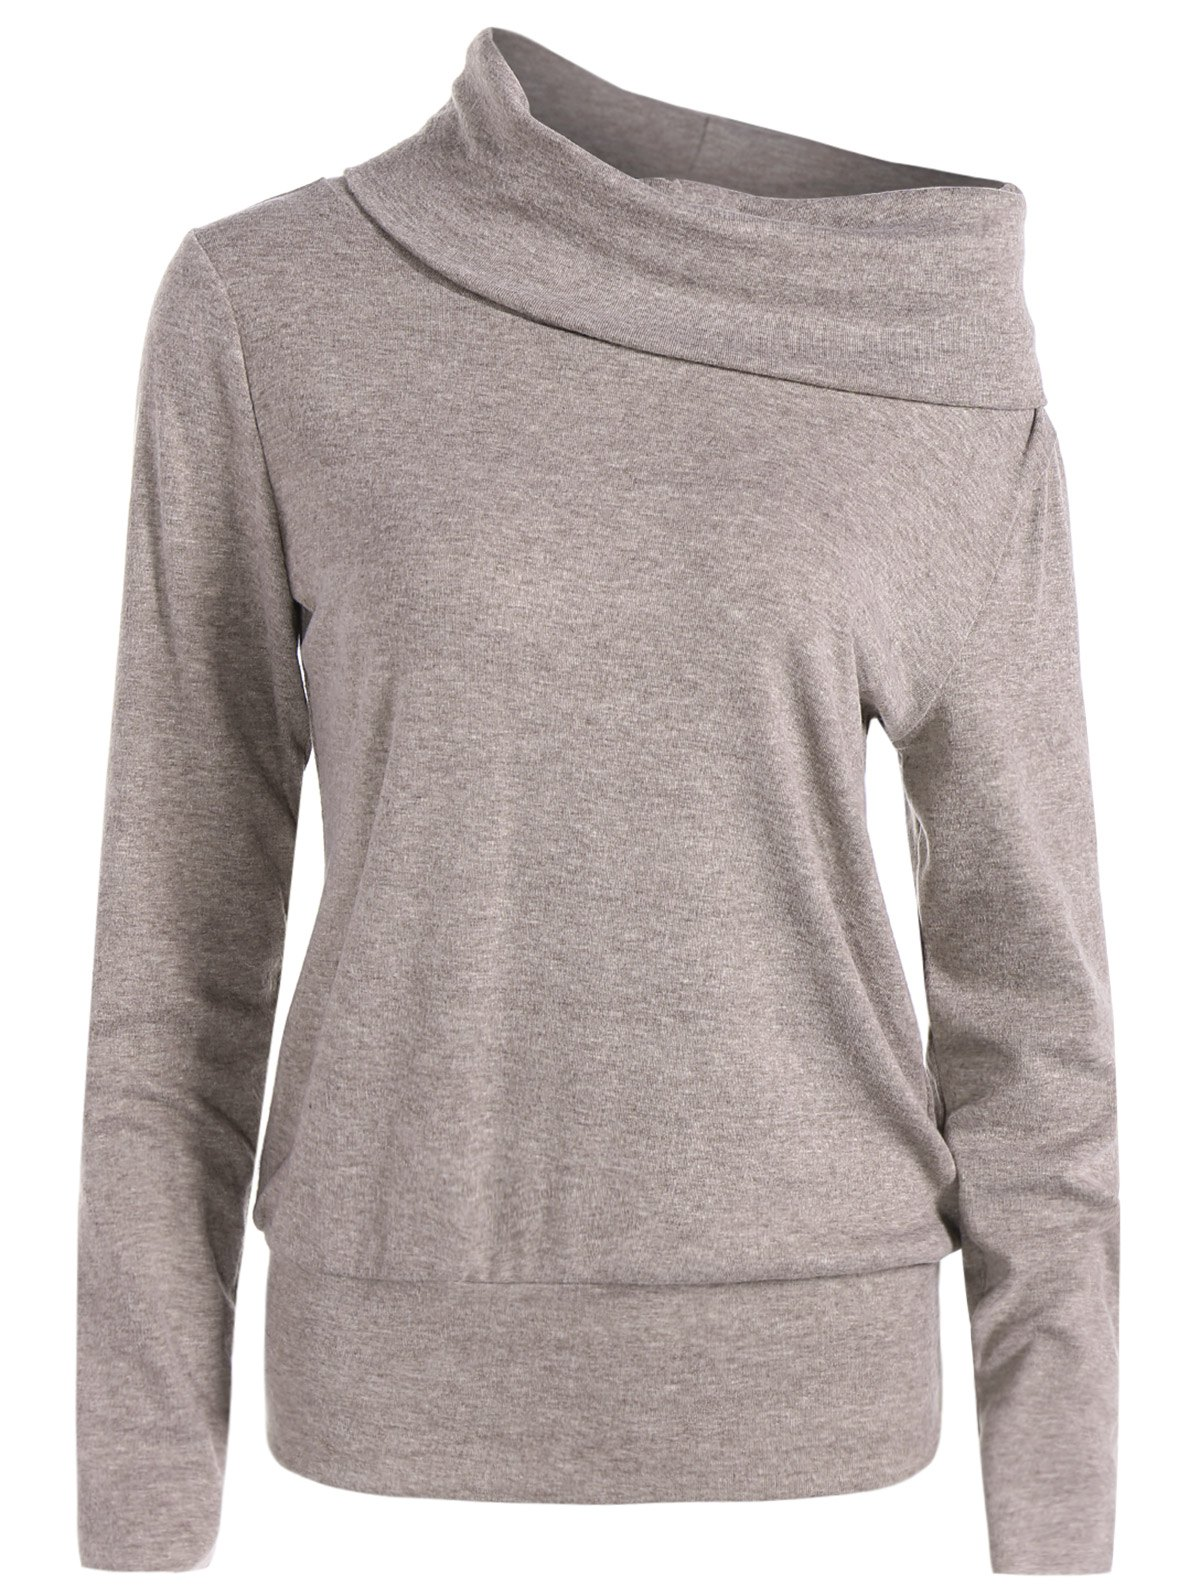 Haut Long Neck Sleeve Sweatshirt - Clair Beige M